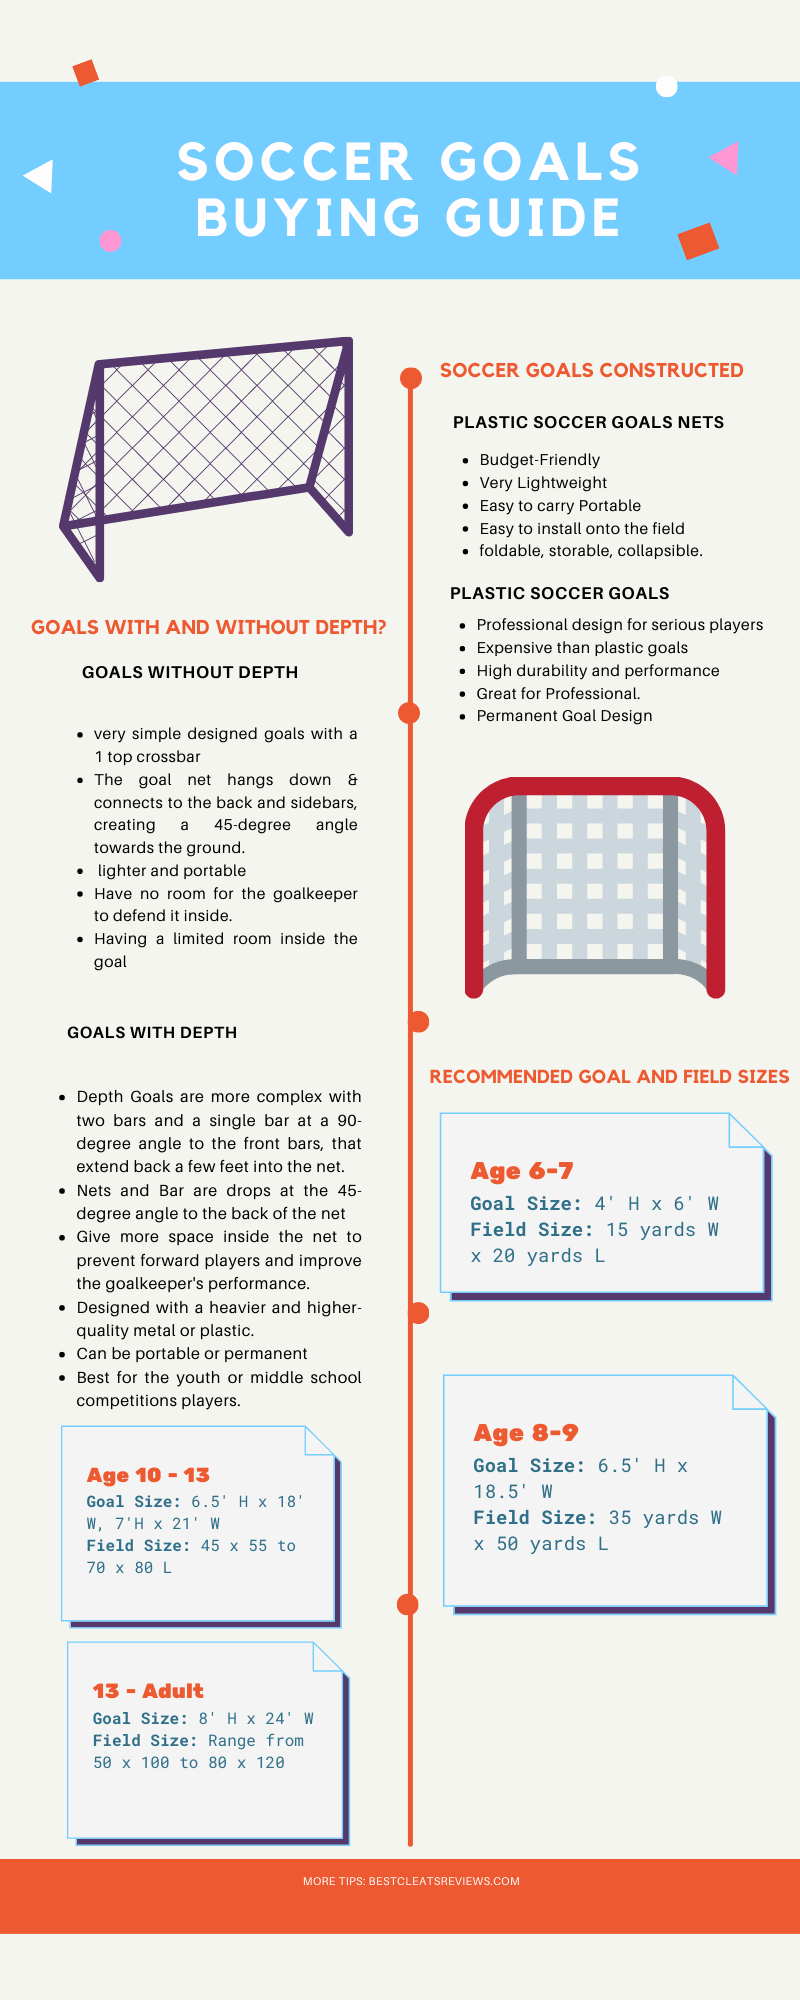 Soccer Goals Buyer's Guide Infographic